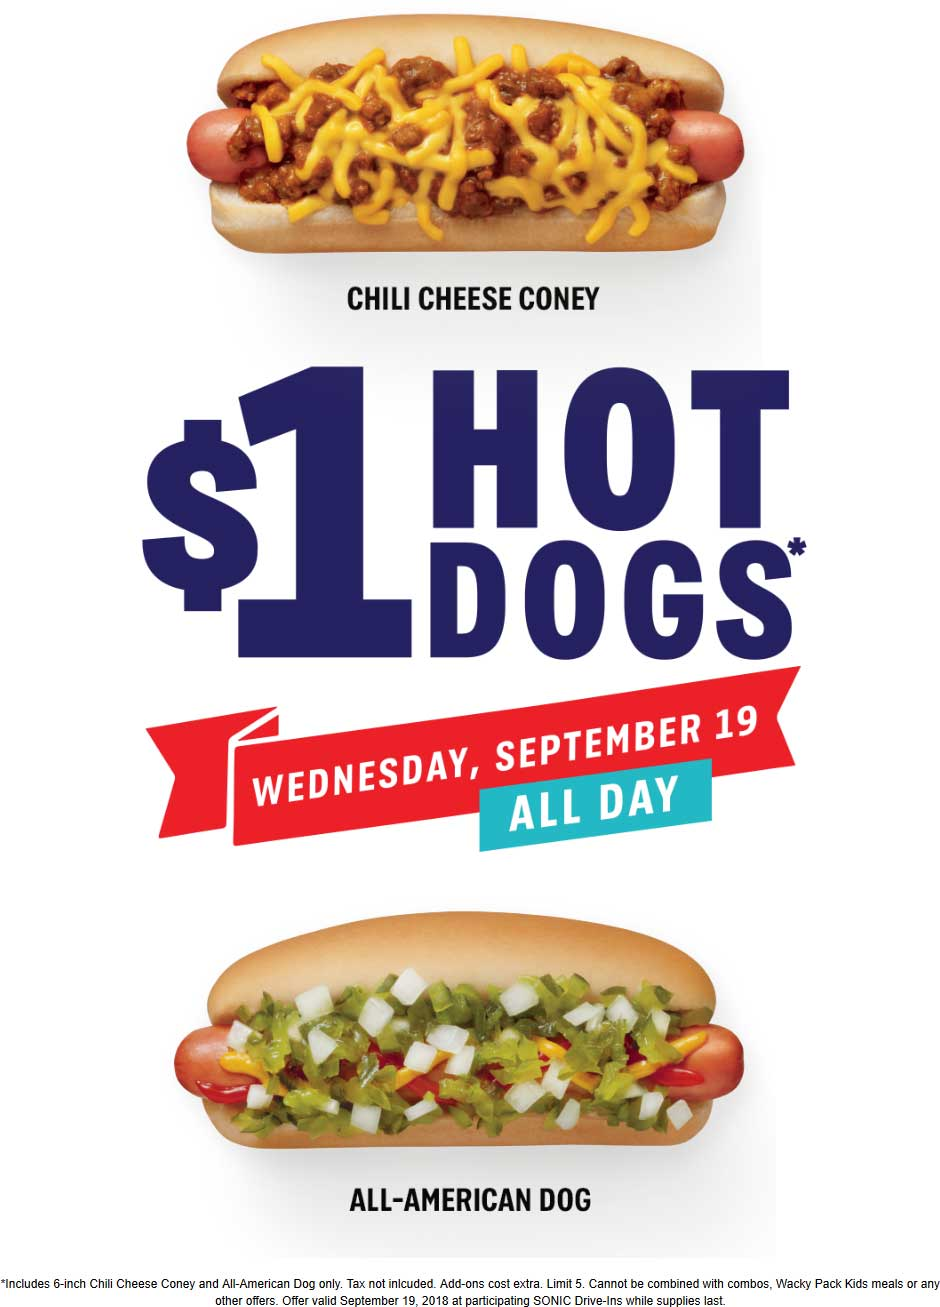 Sonic Drive-In Coupon July 2019 $1 hot dogs today at Sonic Drive-In restaurants